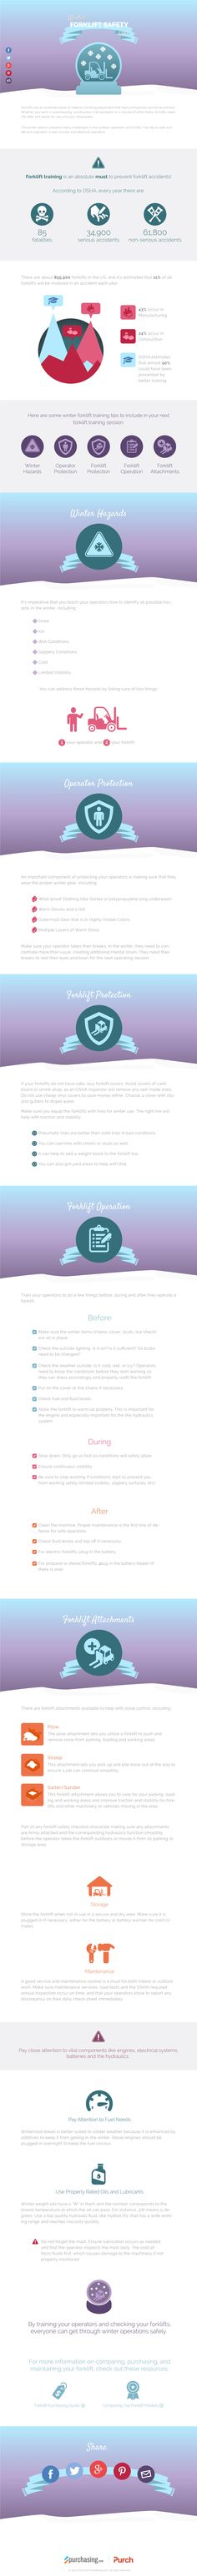 #Winter Forklift #Safety #Tips & #Infographic!